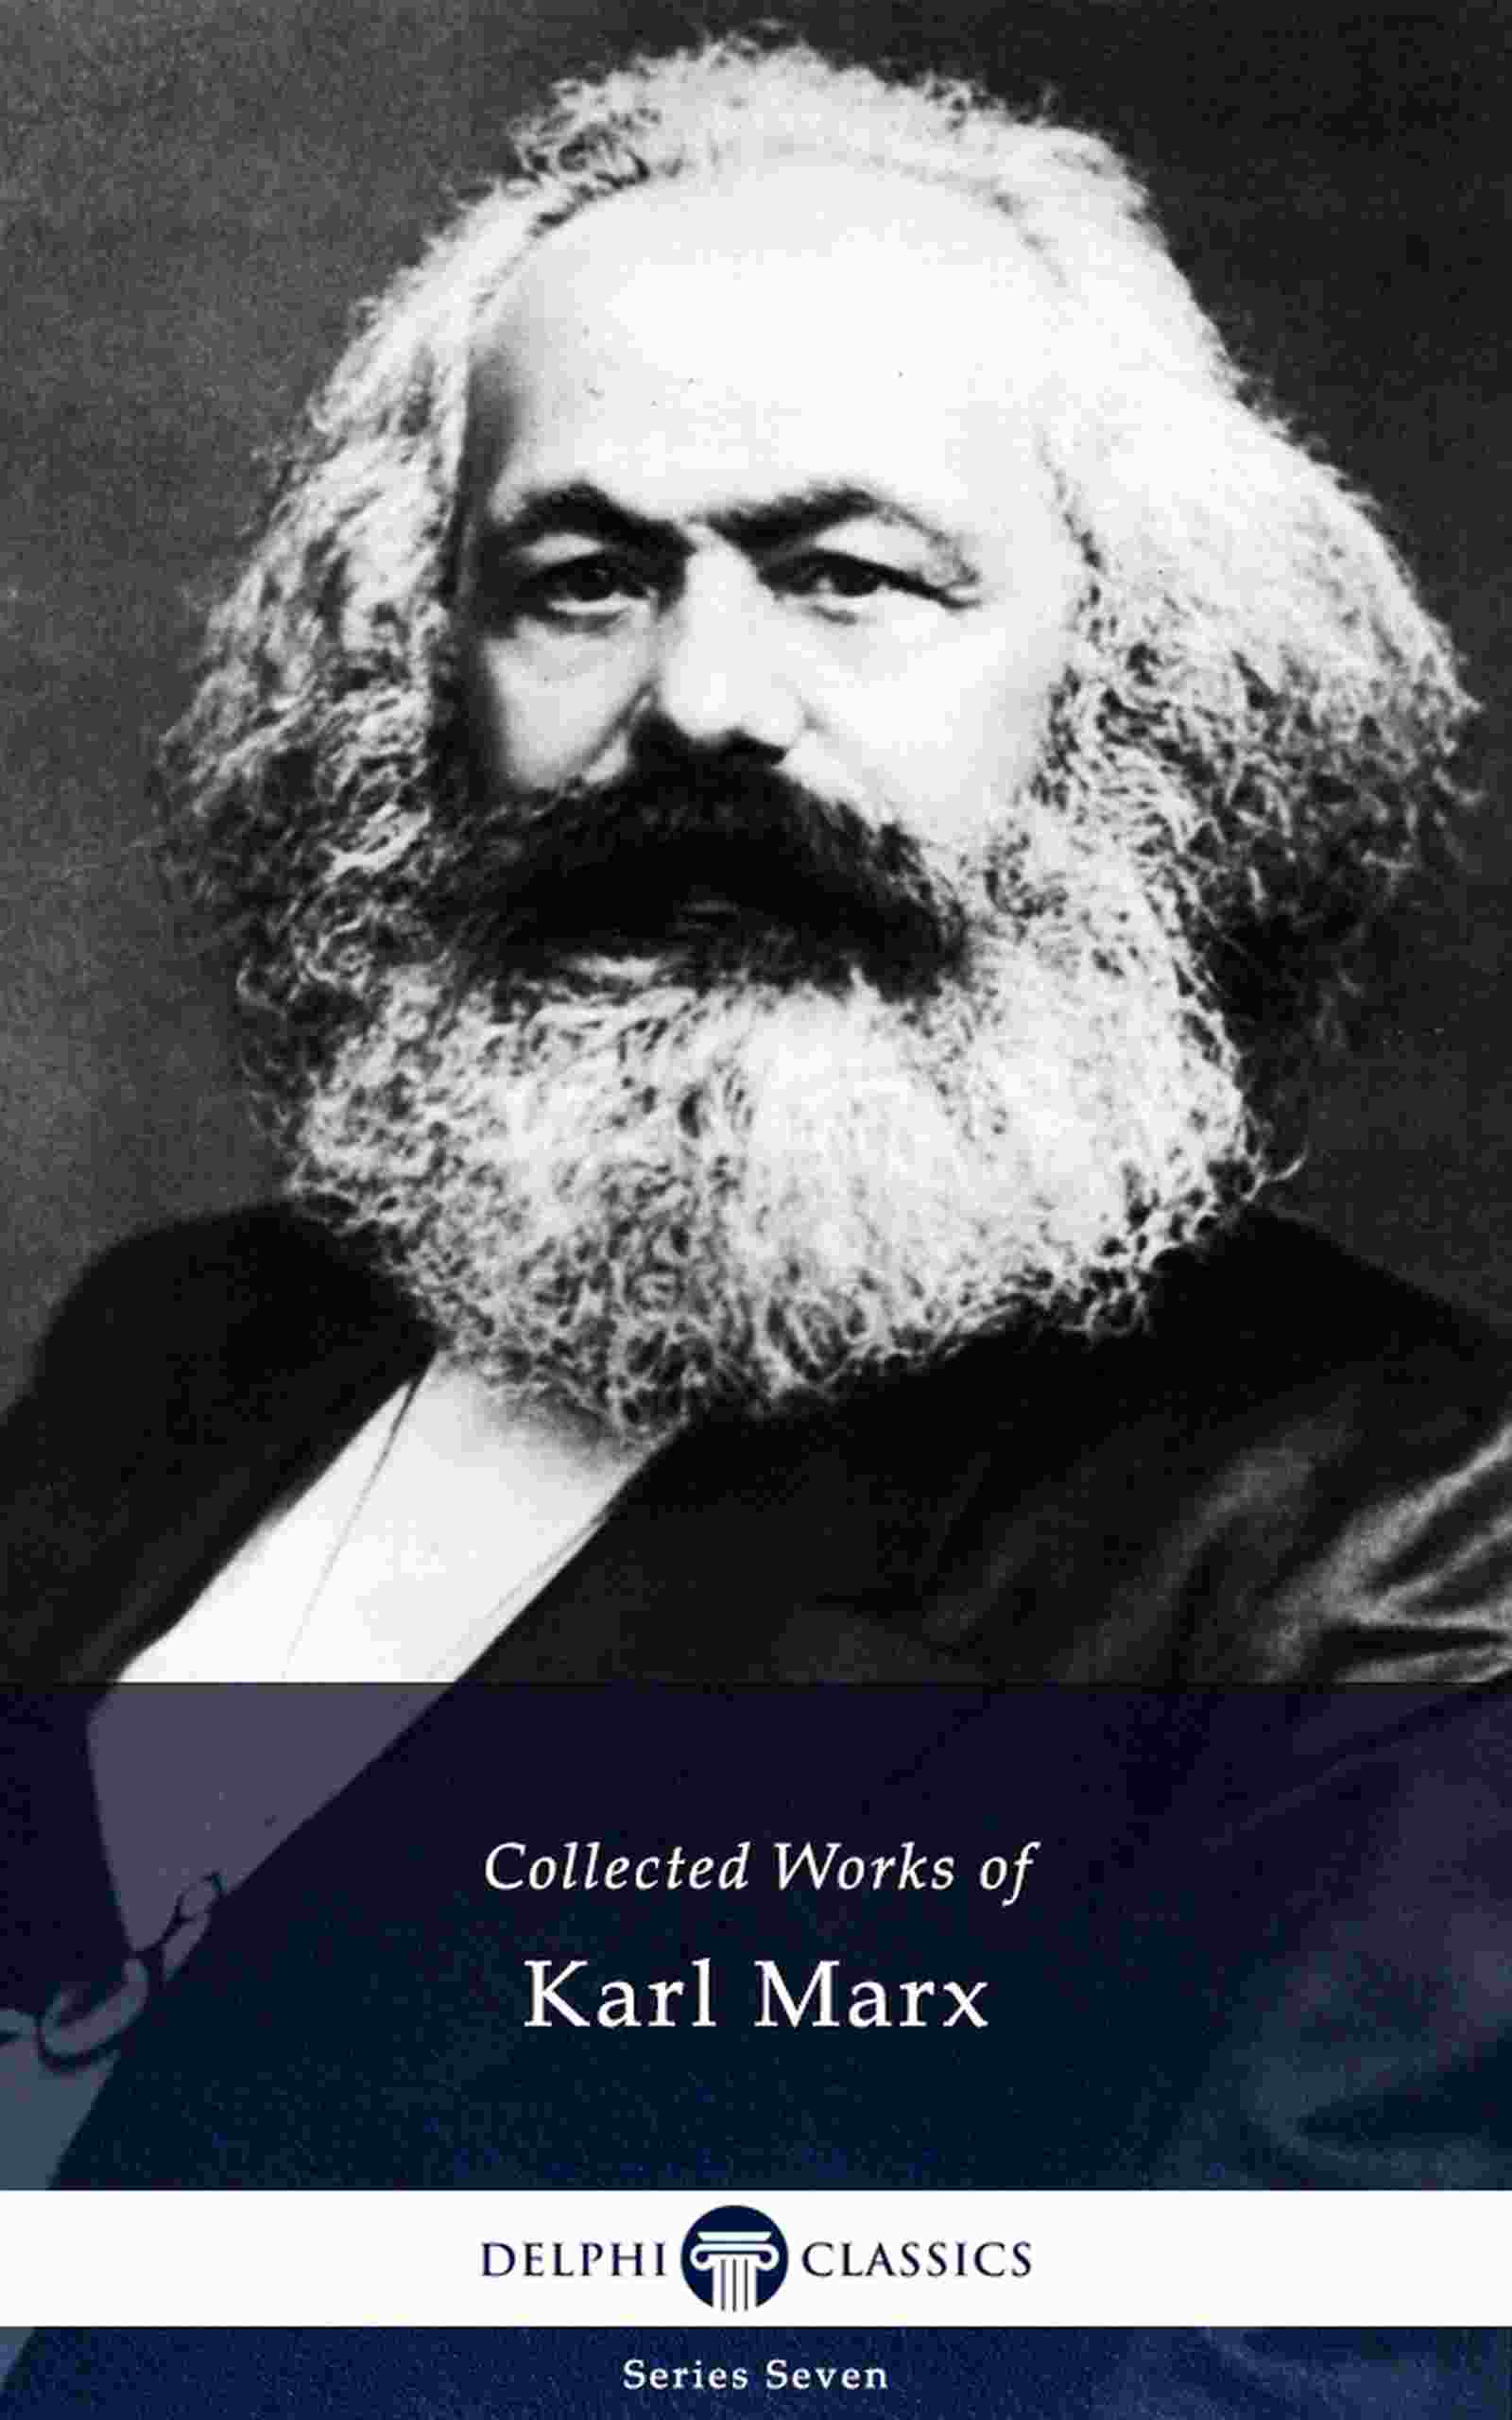 essay on works of karl marx essay topics karl marx delphi classics